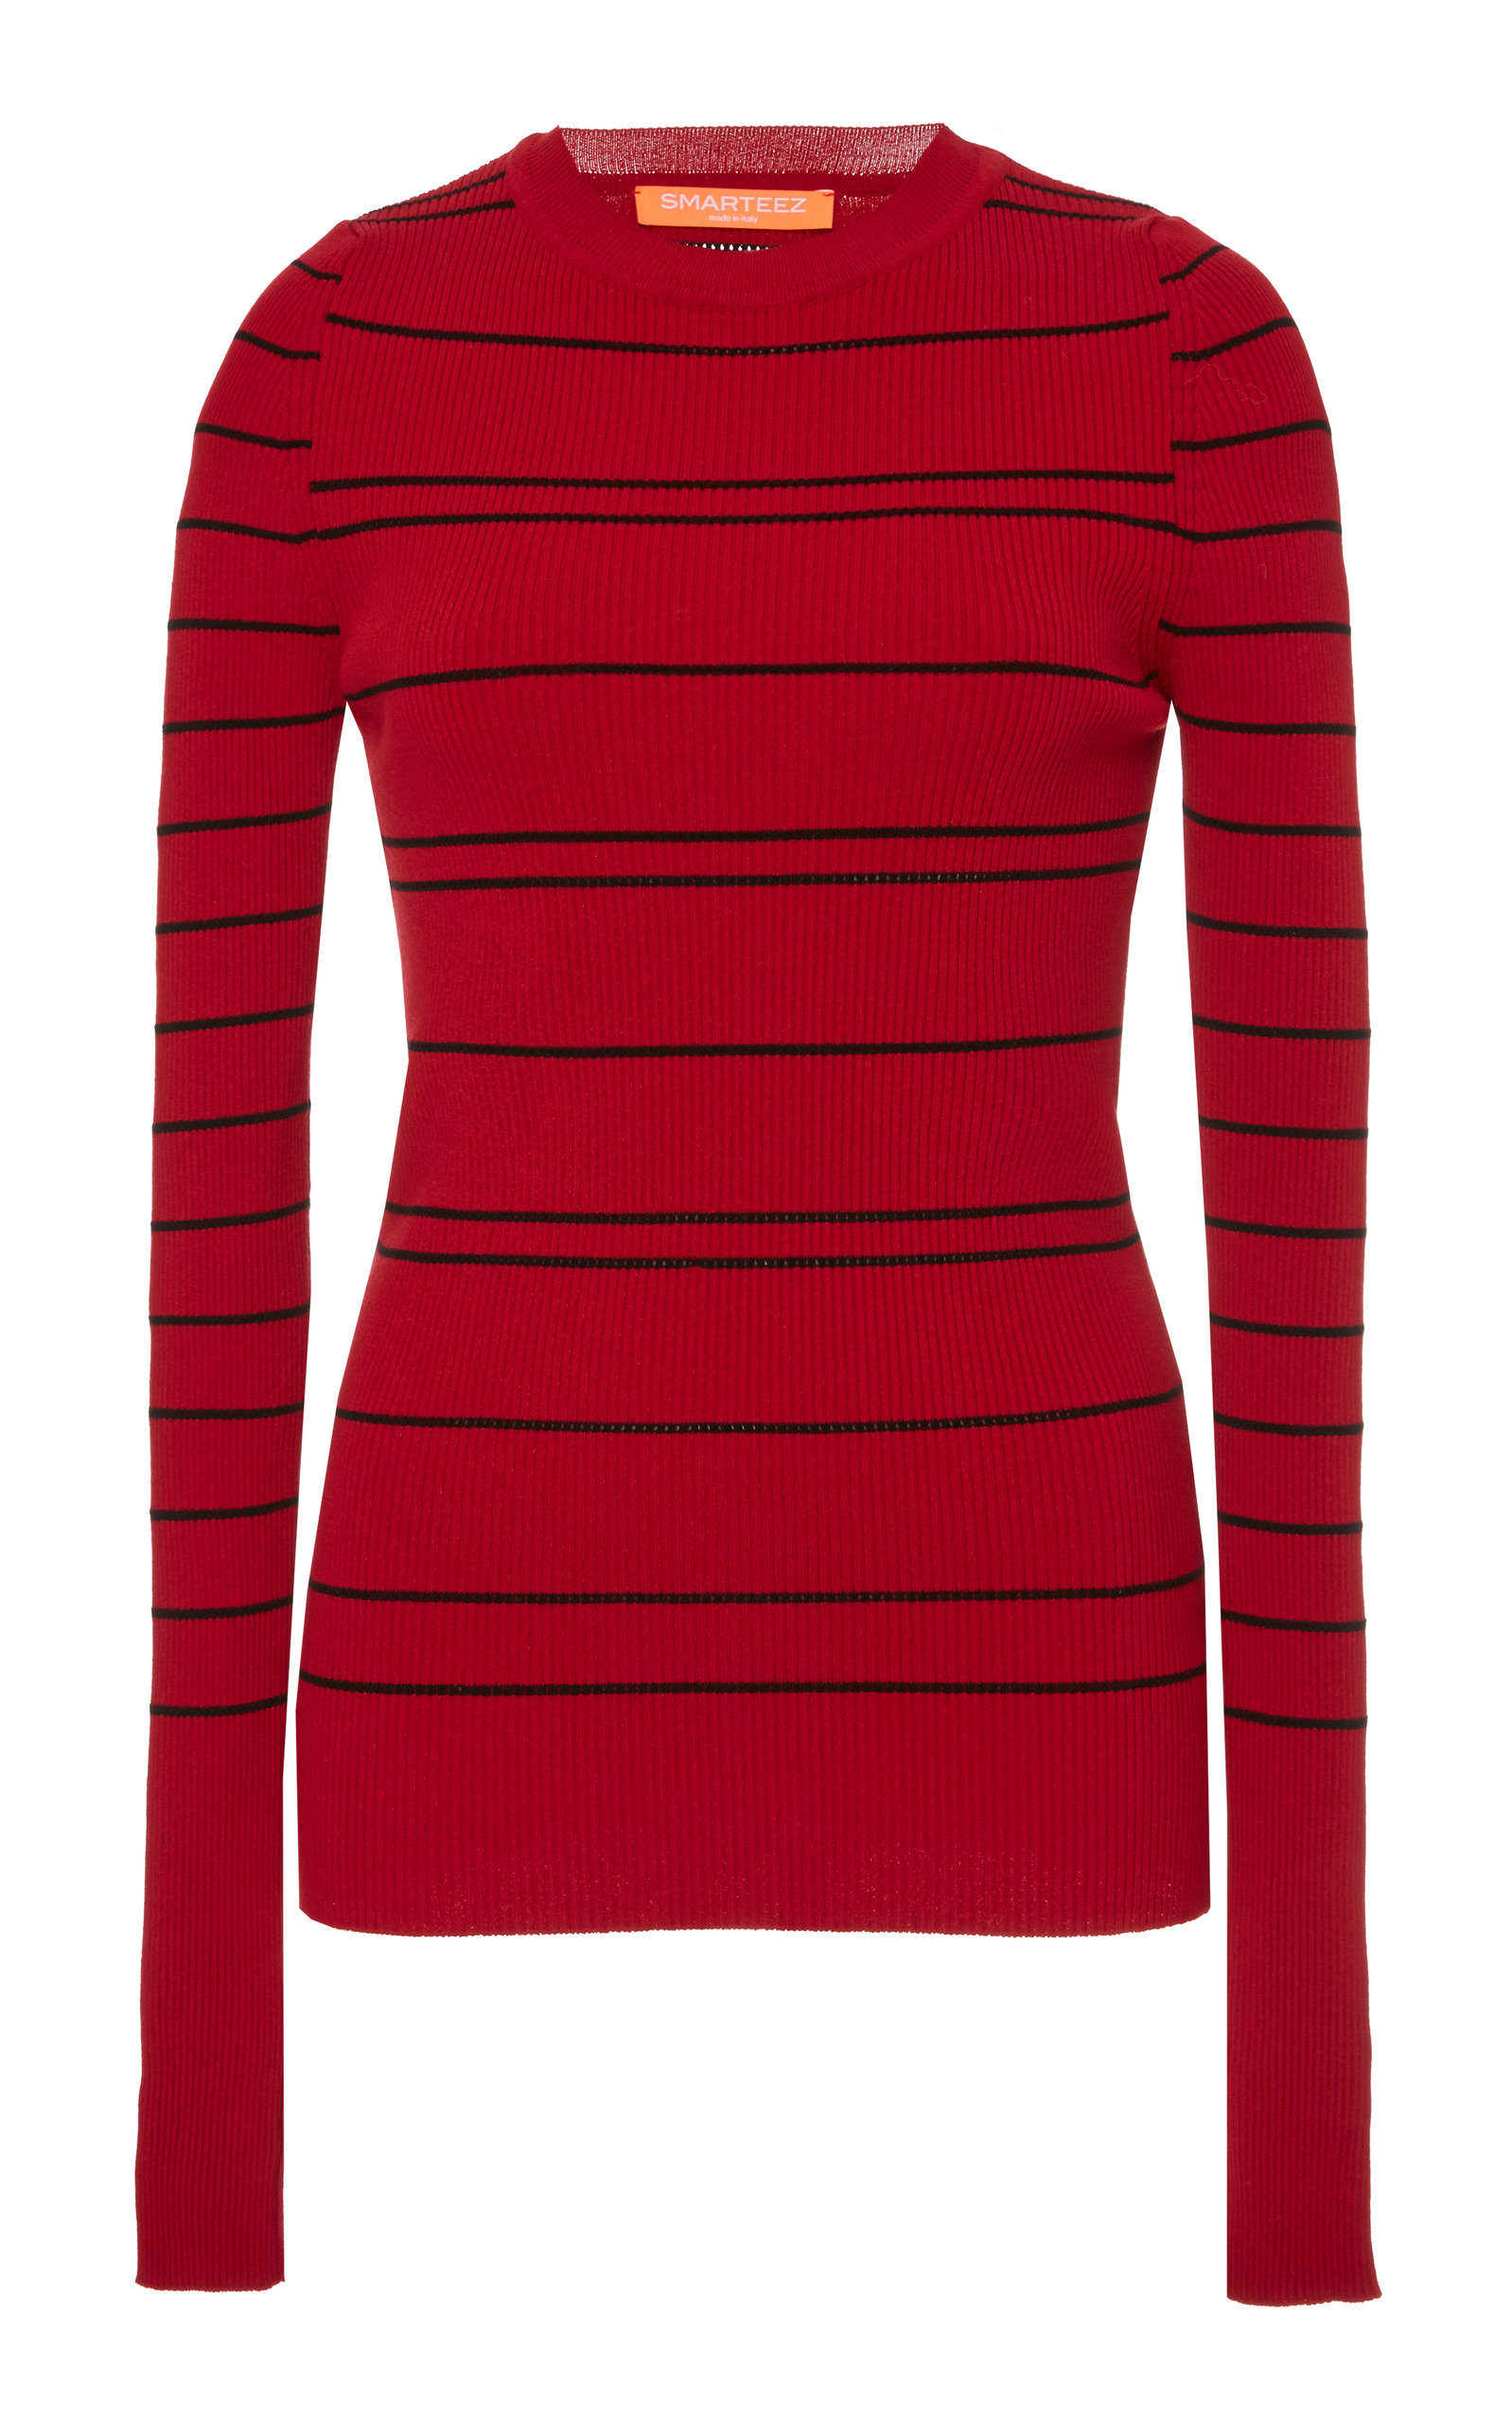 SMARTEEZ Aven Striped Knit in Red